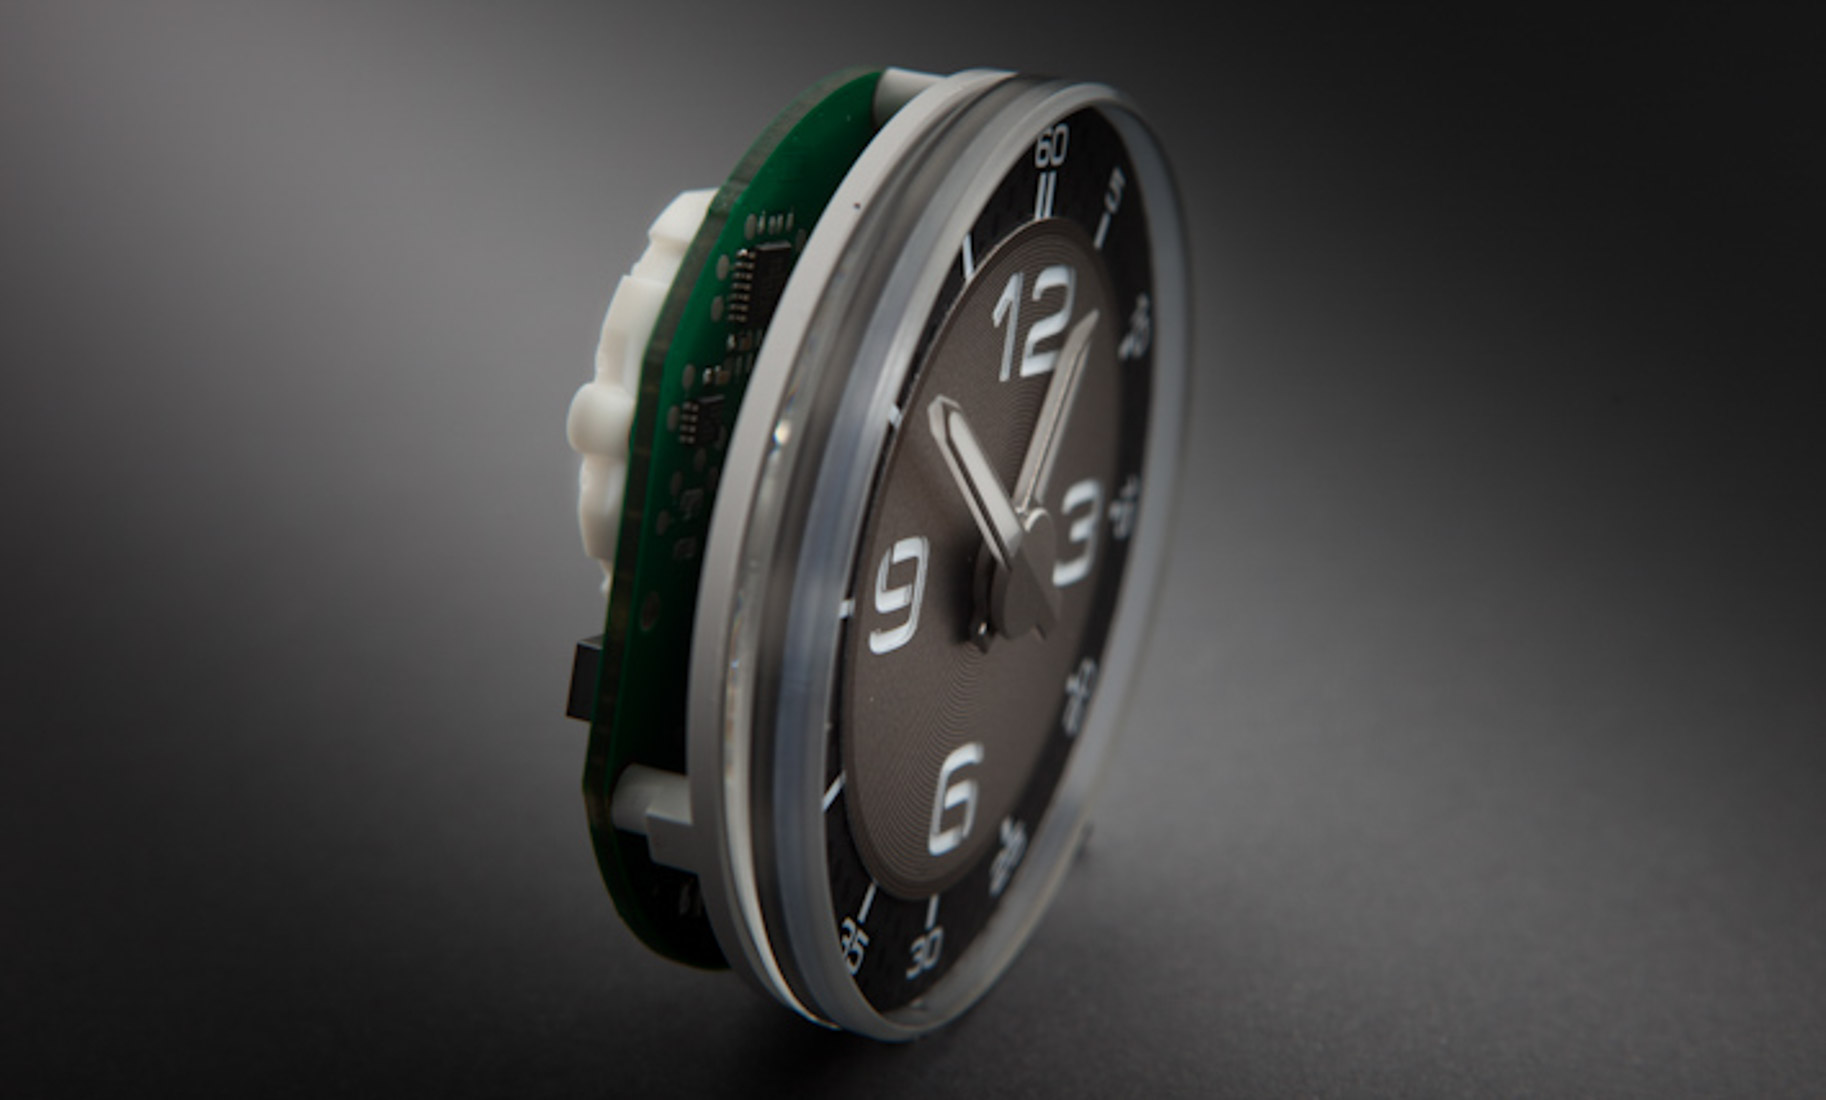 Juken_watch_motor_0100_1